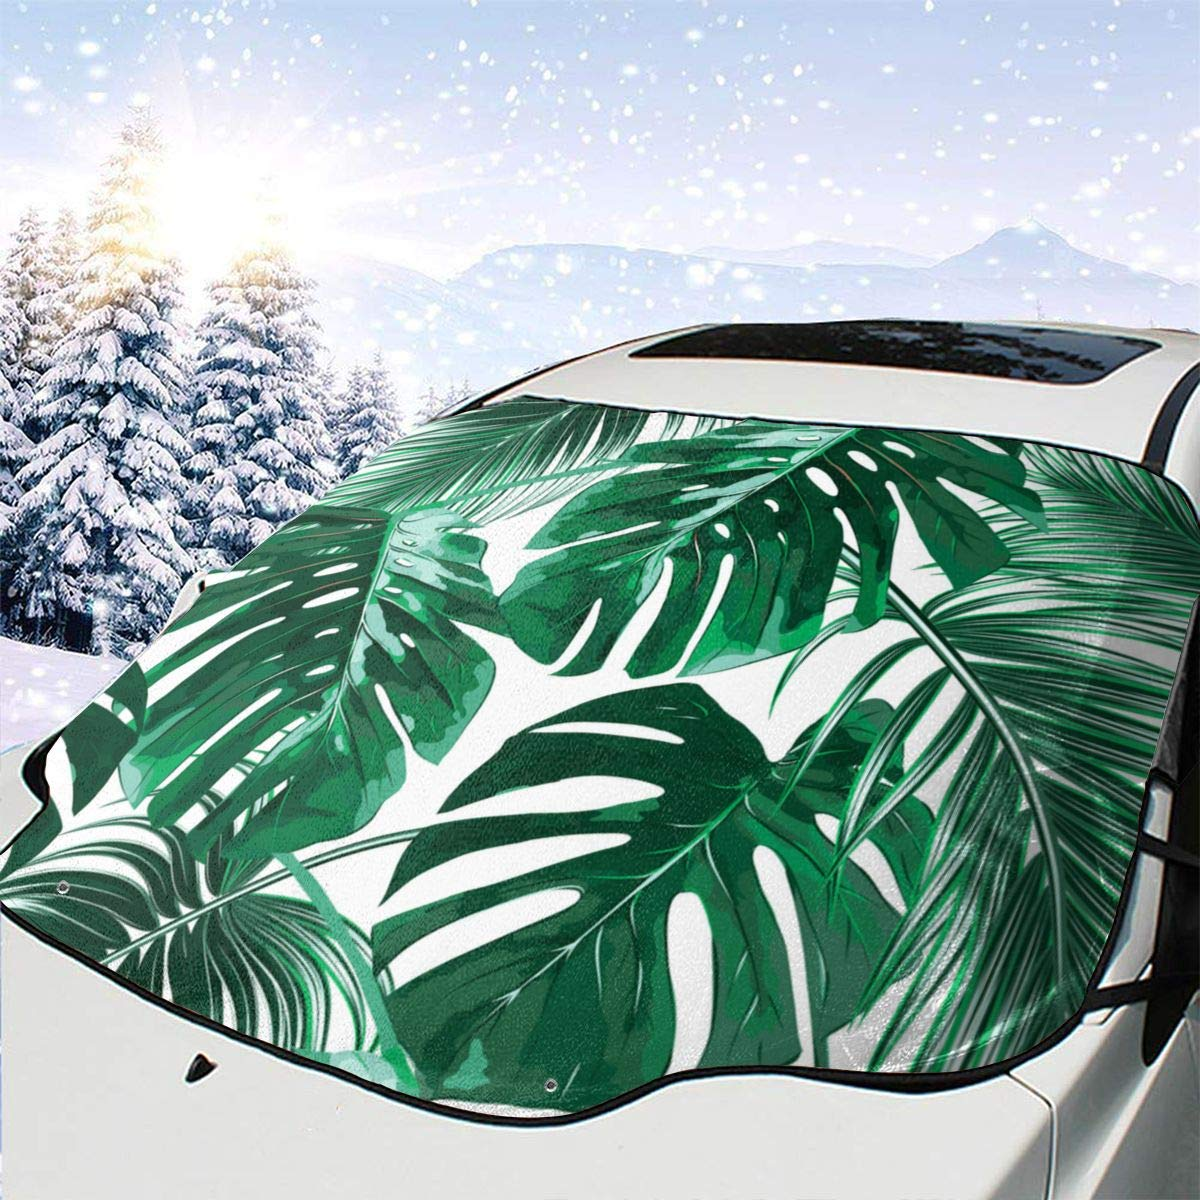 In stock Adiabatic Automotive At the price Windshield Sunshades Tropical Palm Leaves